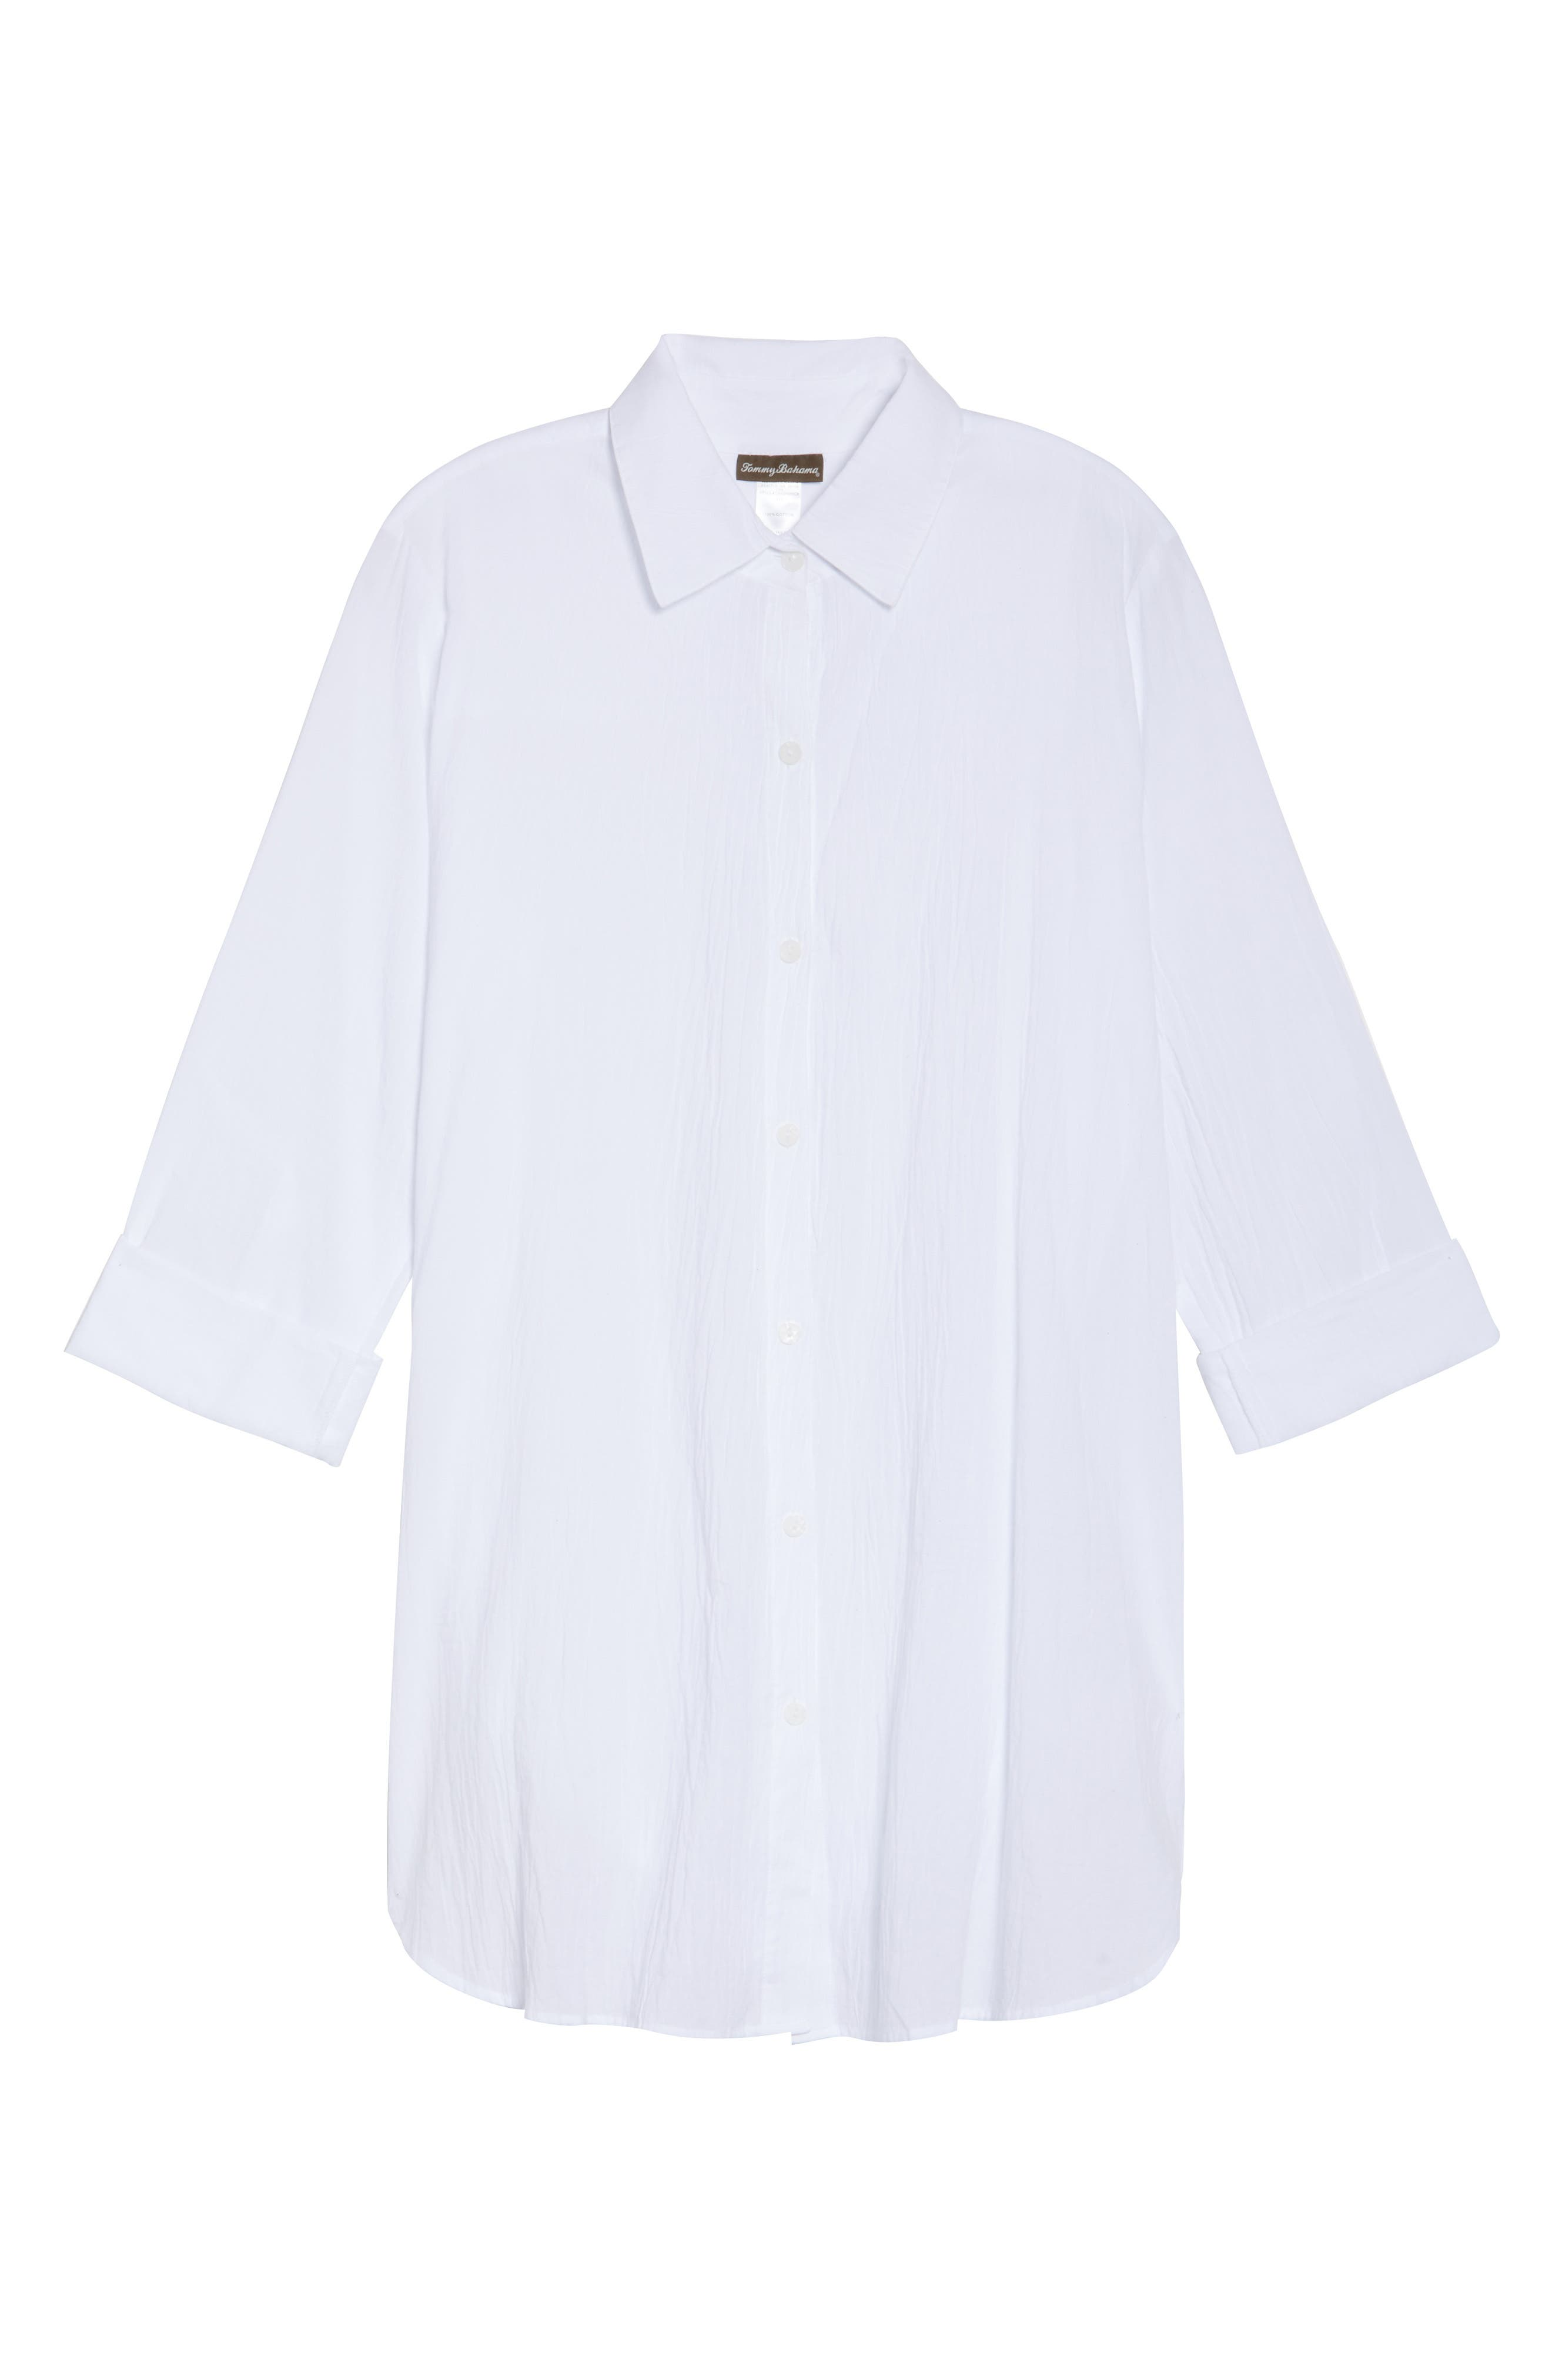 TOMMY BAHAMA,                             Boyfriend Shirt Cover-Up,                             Alternate thumbnail 7, color,                             WHITE